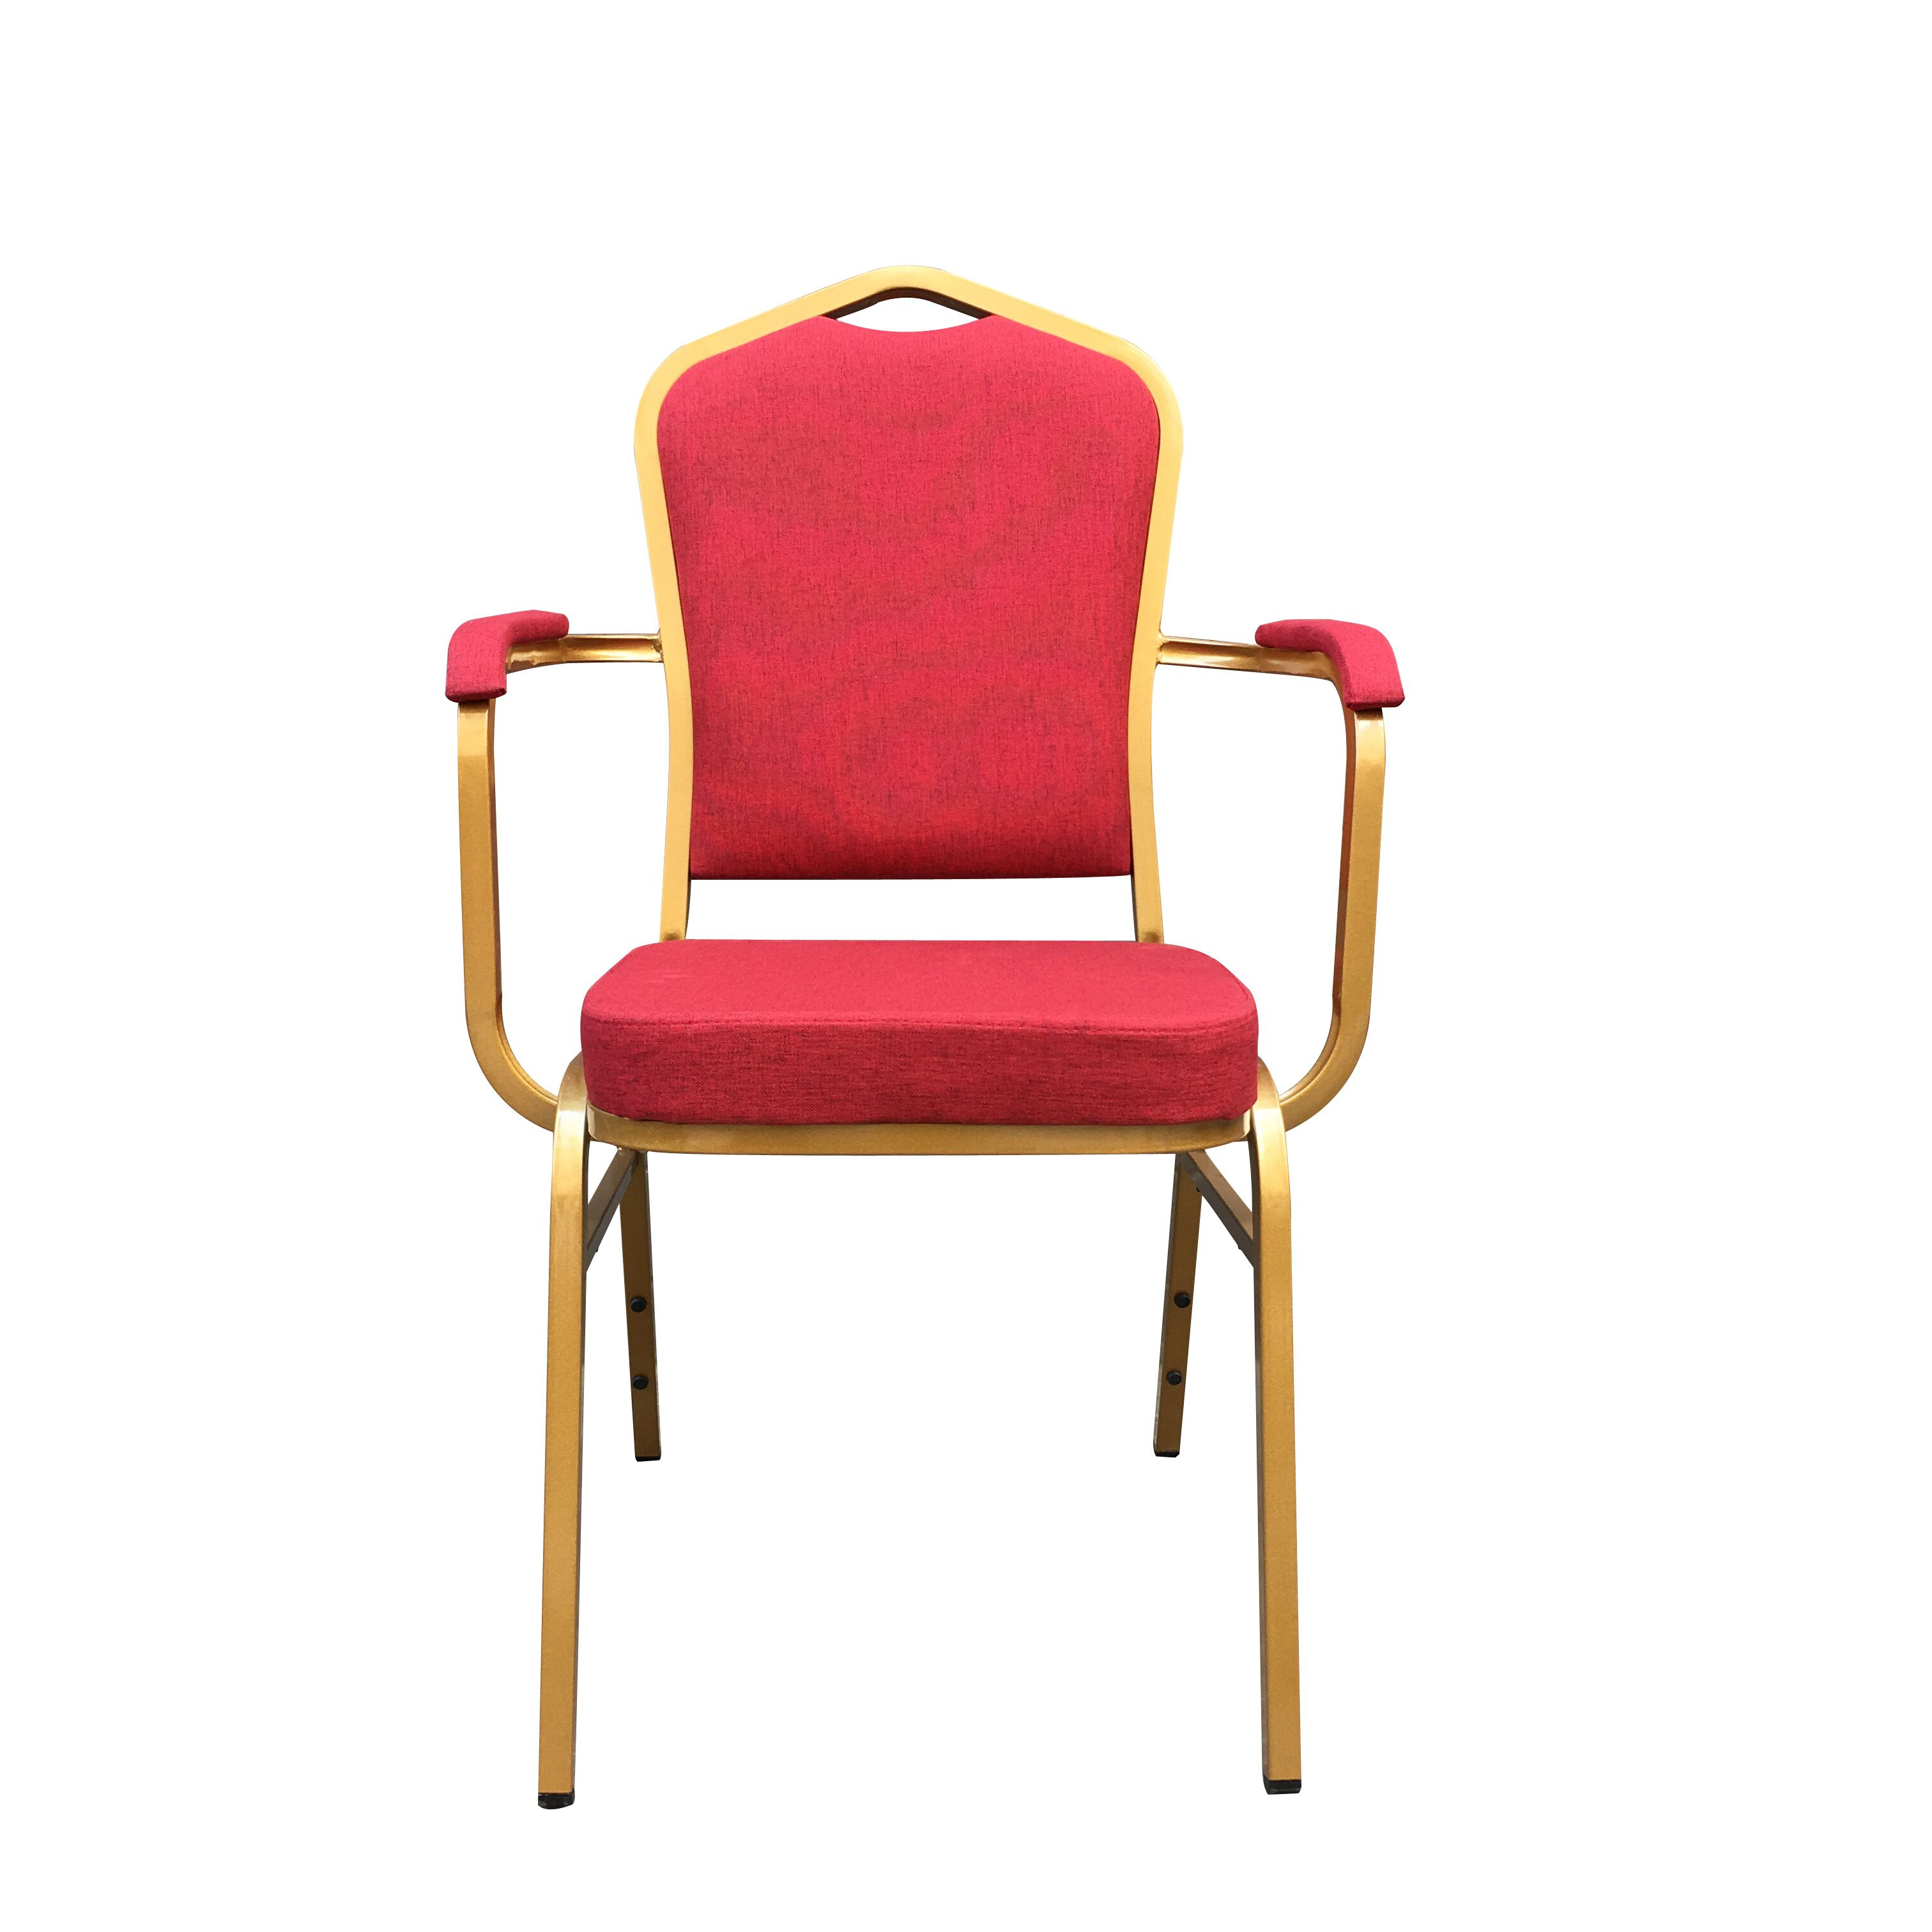 Banquet Chairs With Arms SF-G08 Featured Image